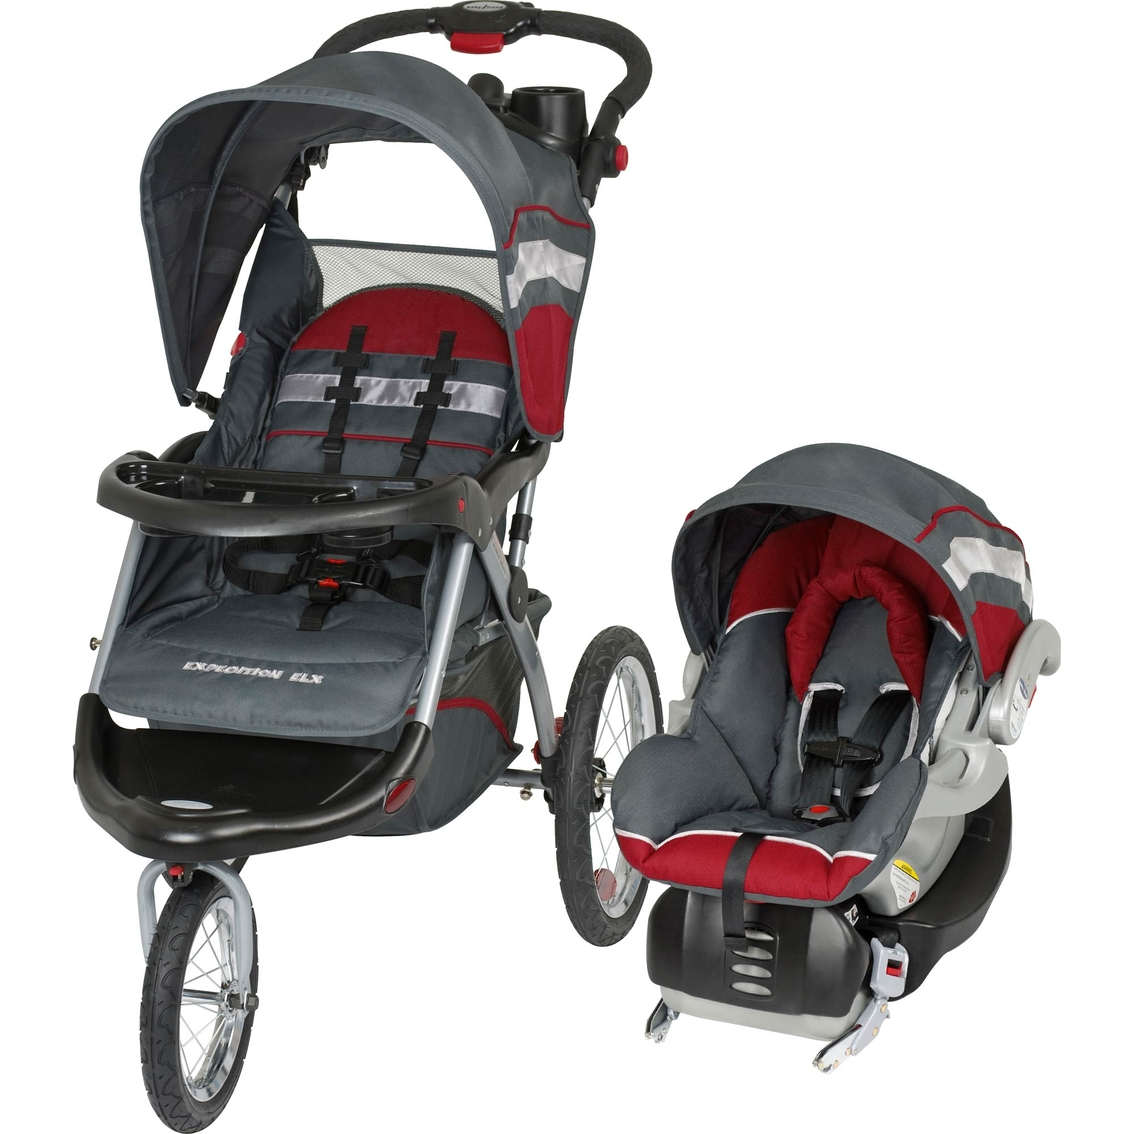 Toddler Stroller Jogging Baby Trend Expedition Elx Jogging Stroller And Car Seat 2 Pc